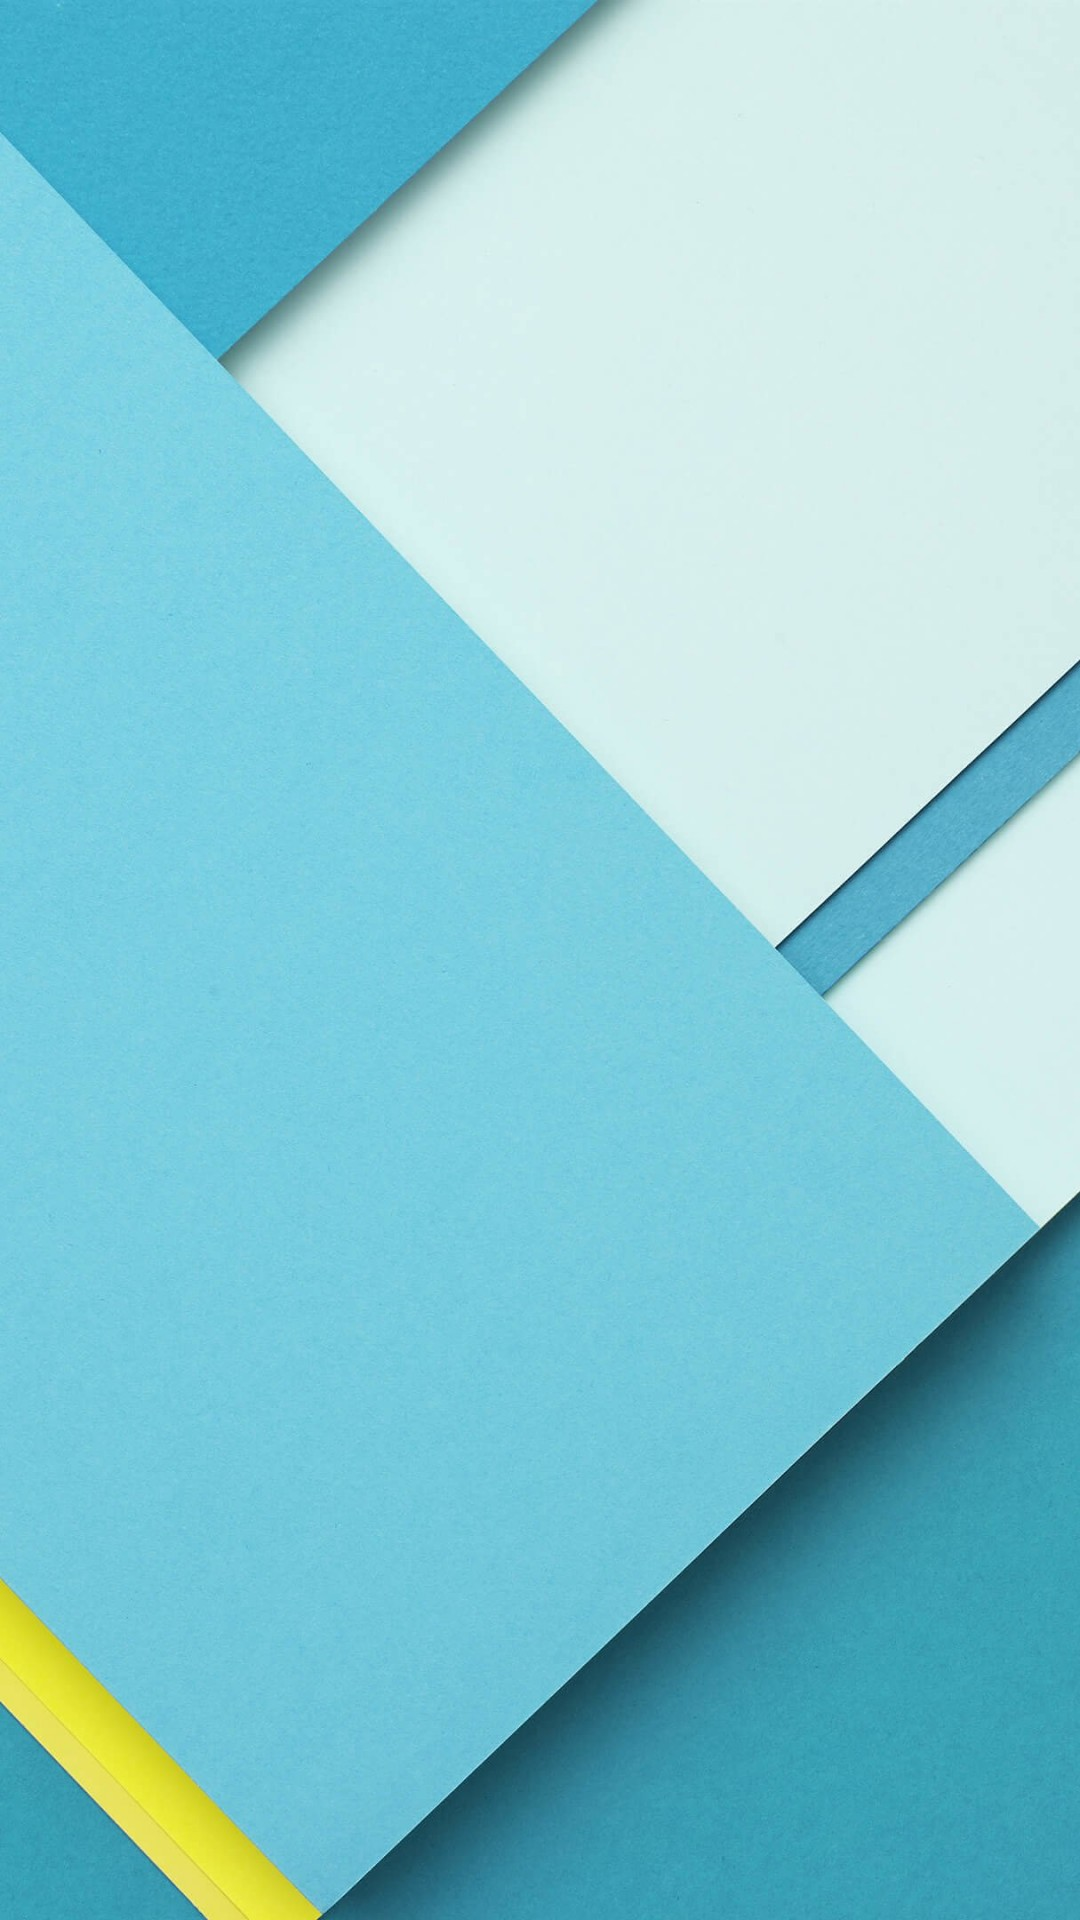 Google Material Design Wallpaper for SONY Xperia Z2